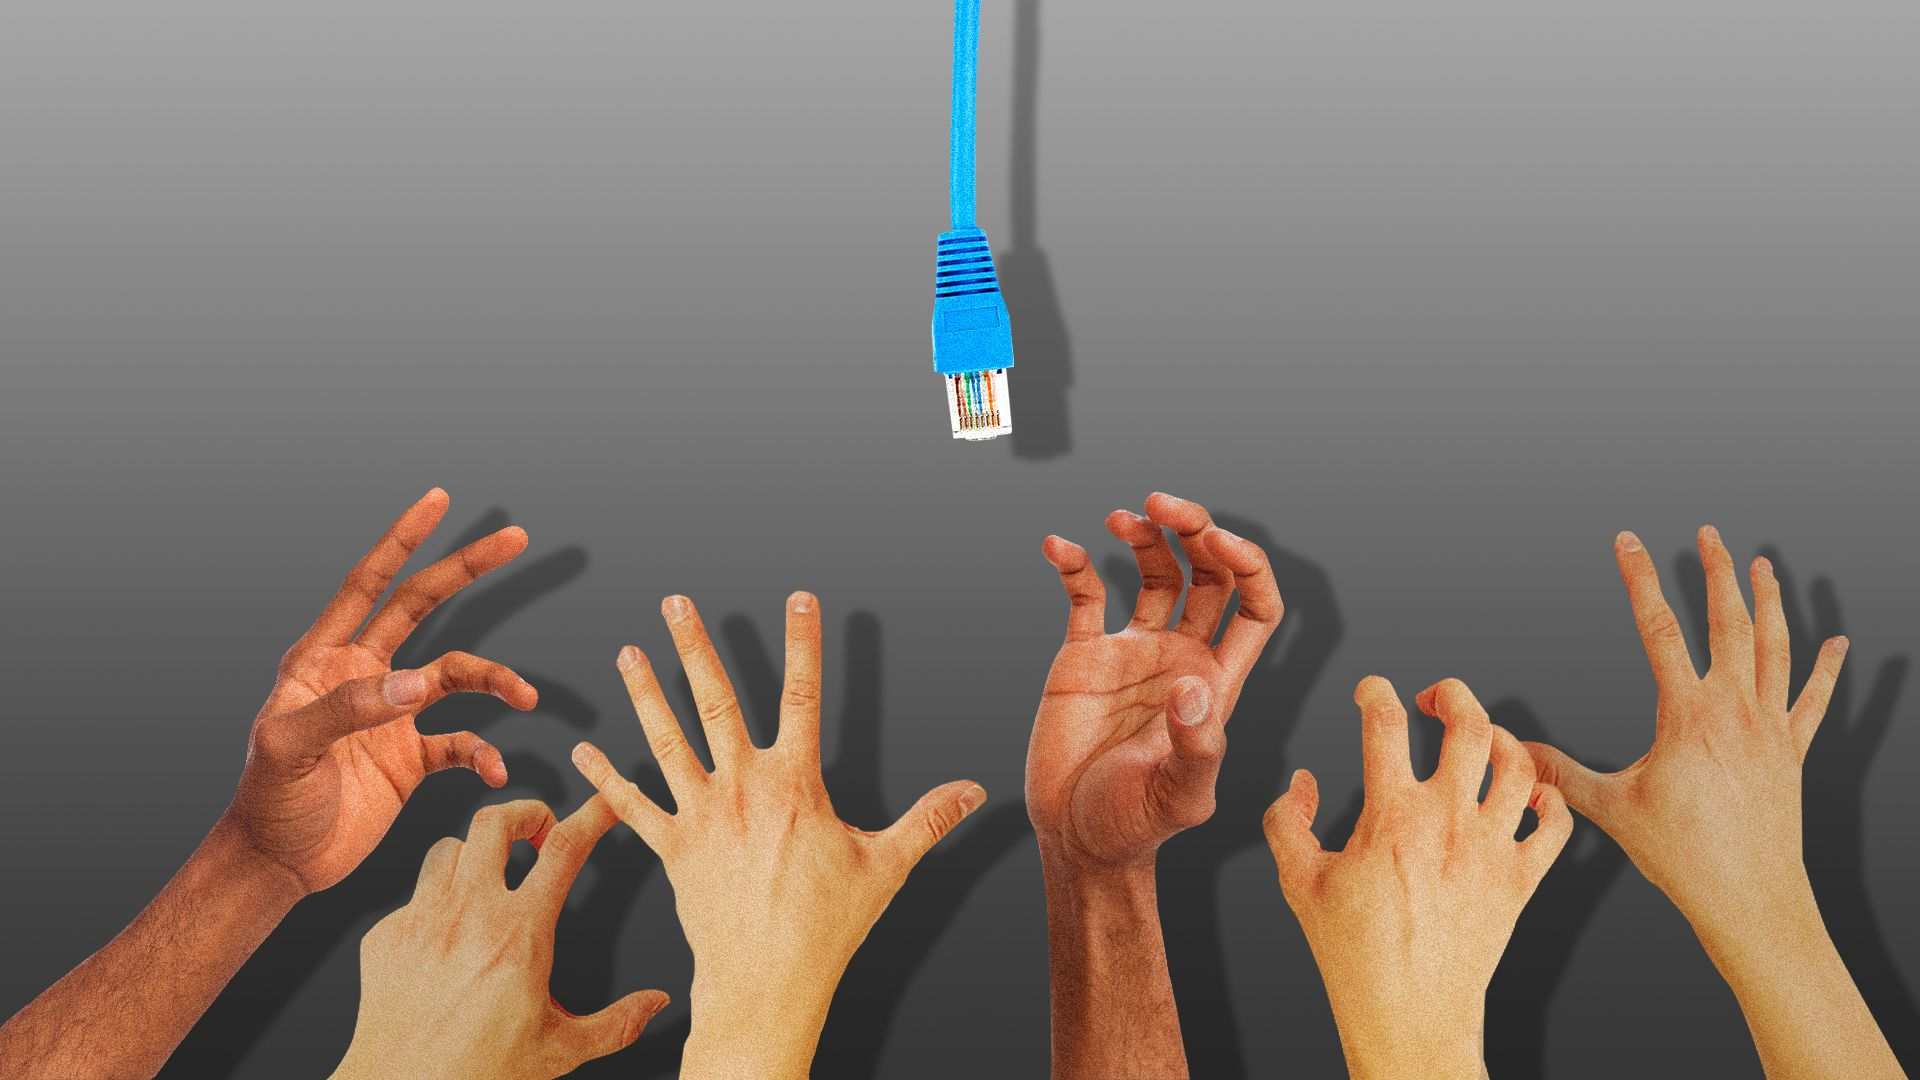 Illustration of hands reaching up to a dangling Ethernet cable.